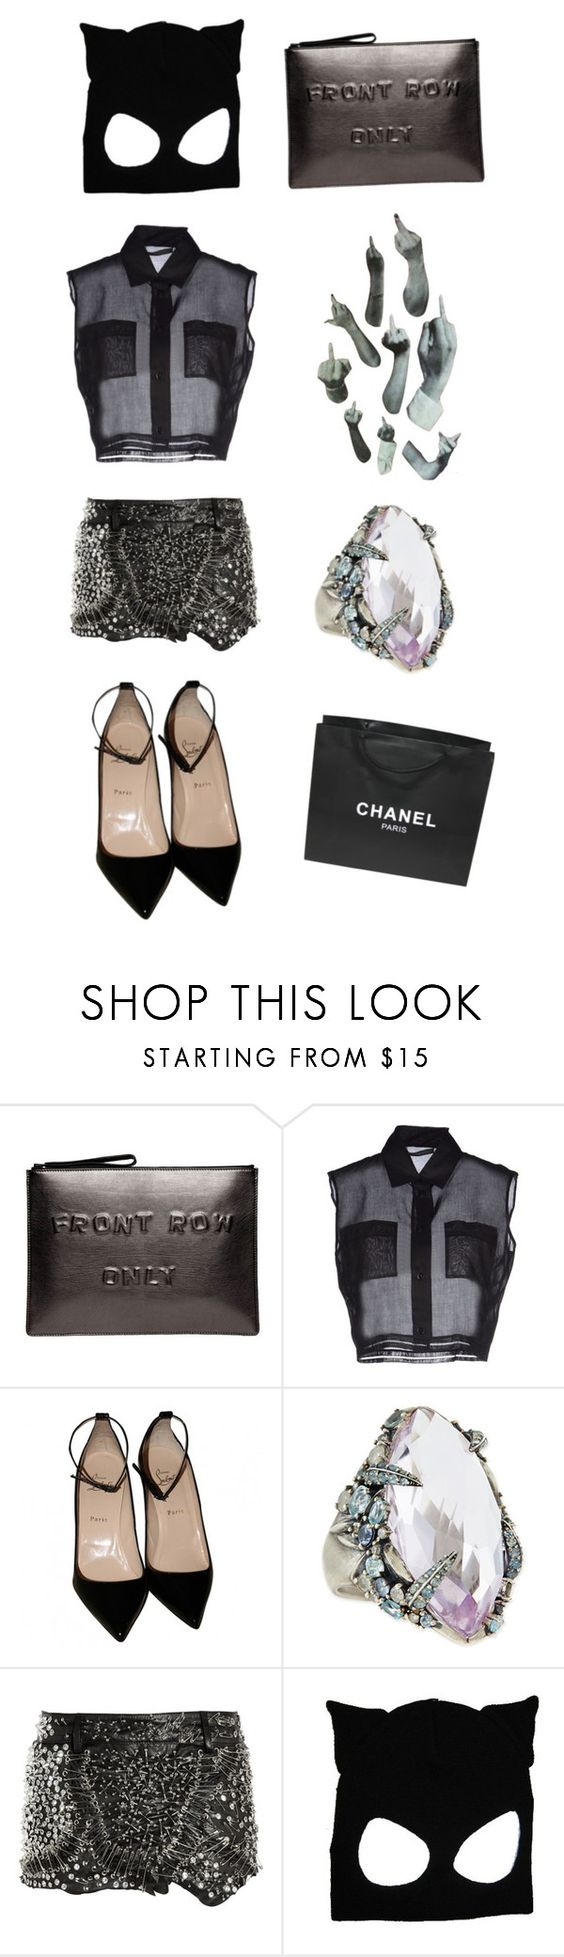 """We are the goon squad"" by honey-bee-mel ❤ liked on Polyvore featuring Chanel, Boyy, Alberta Ferretti, Christian Louboutin, Alexis Bittar and Balmain"